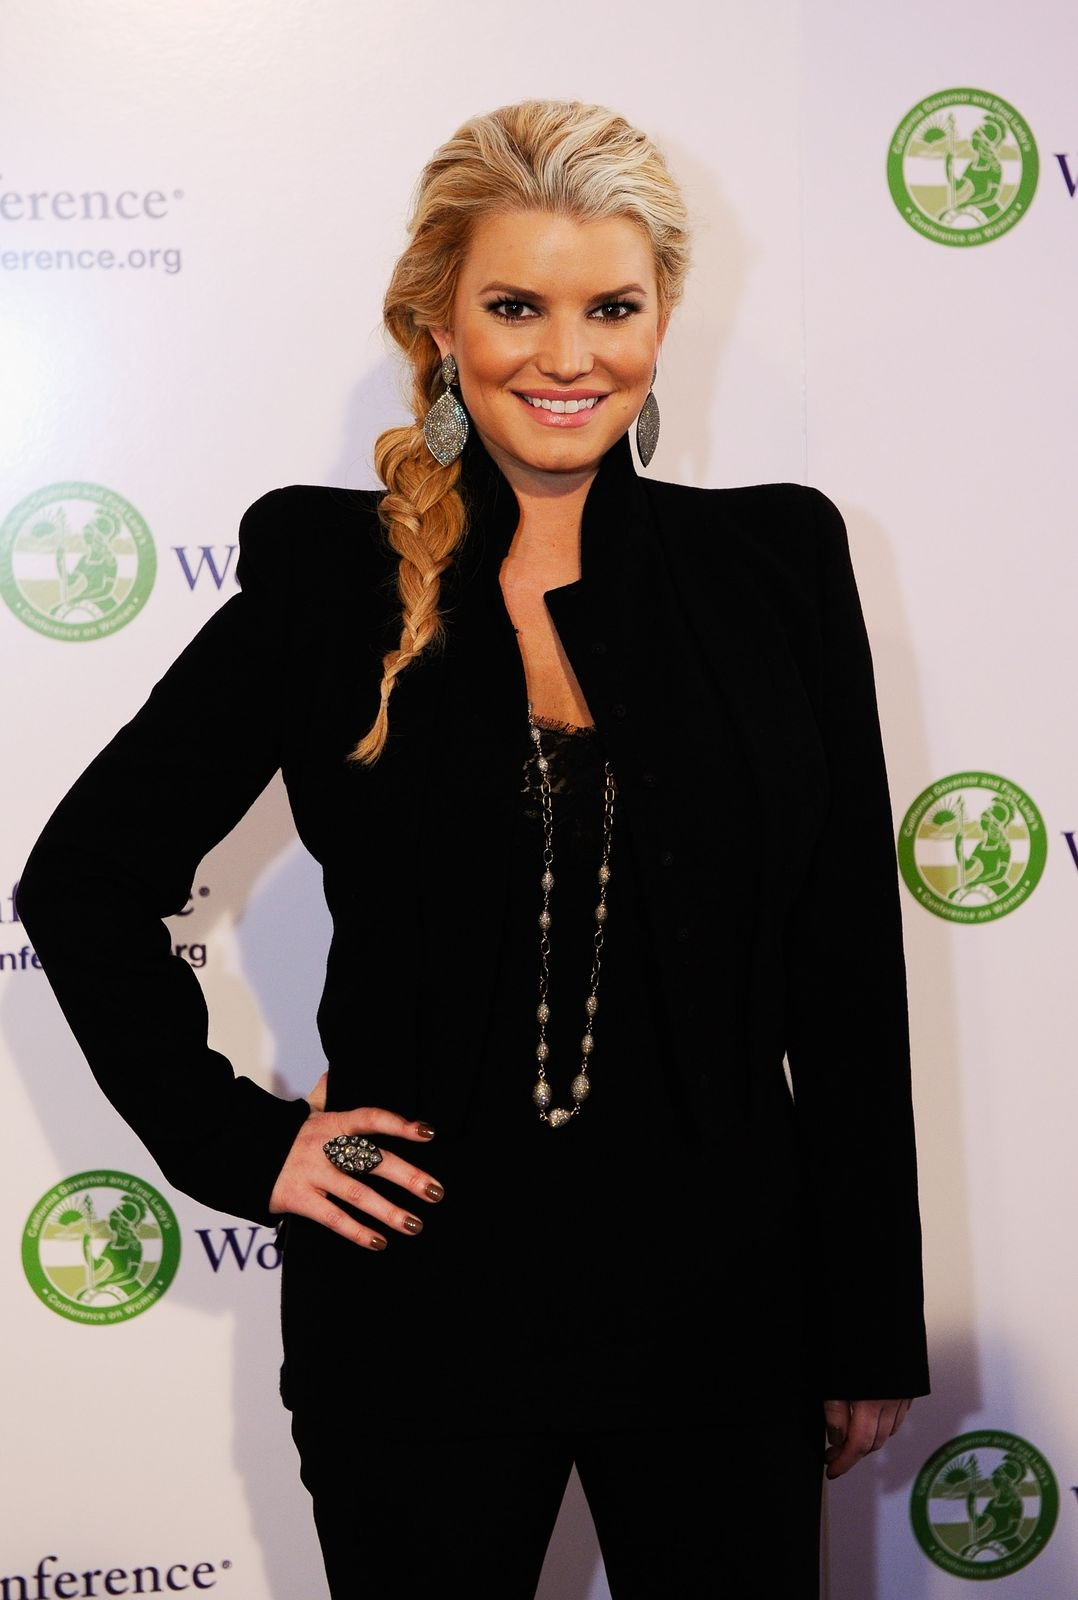 Jessica Simpson poses during California first lady Maria Shriver's annual Women's Conference 2010 on October 26, 2010 in Long Beach, California   Photo: Getty Images